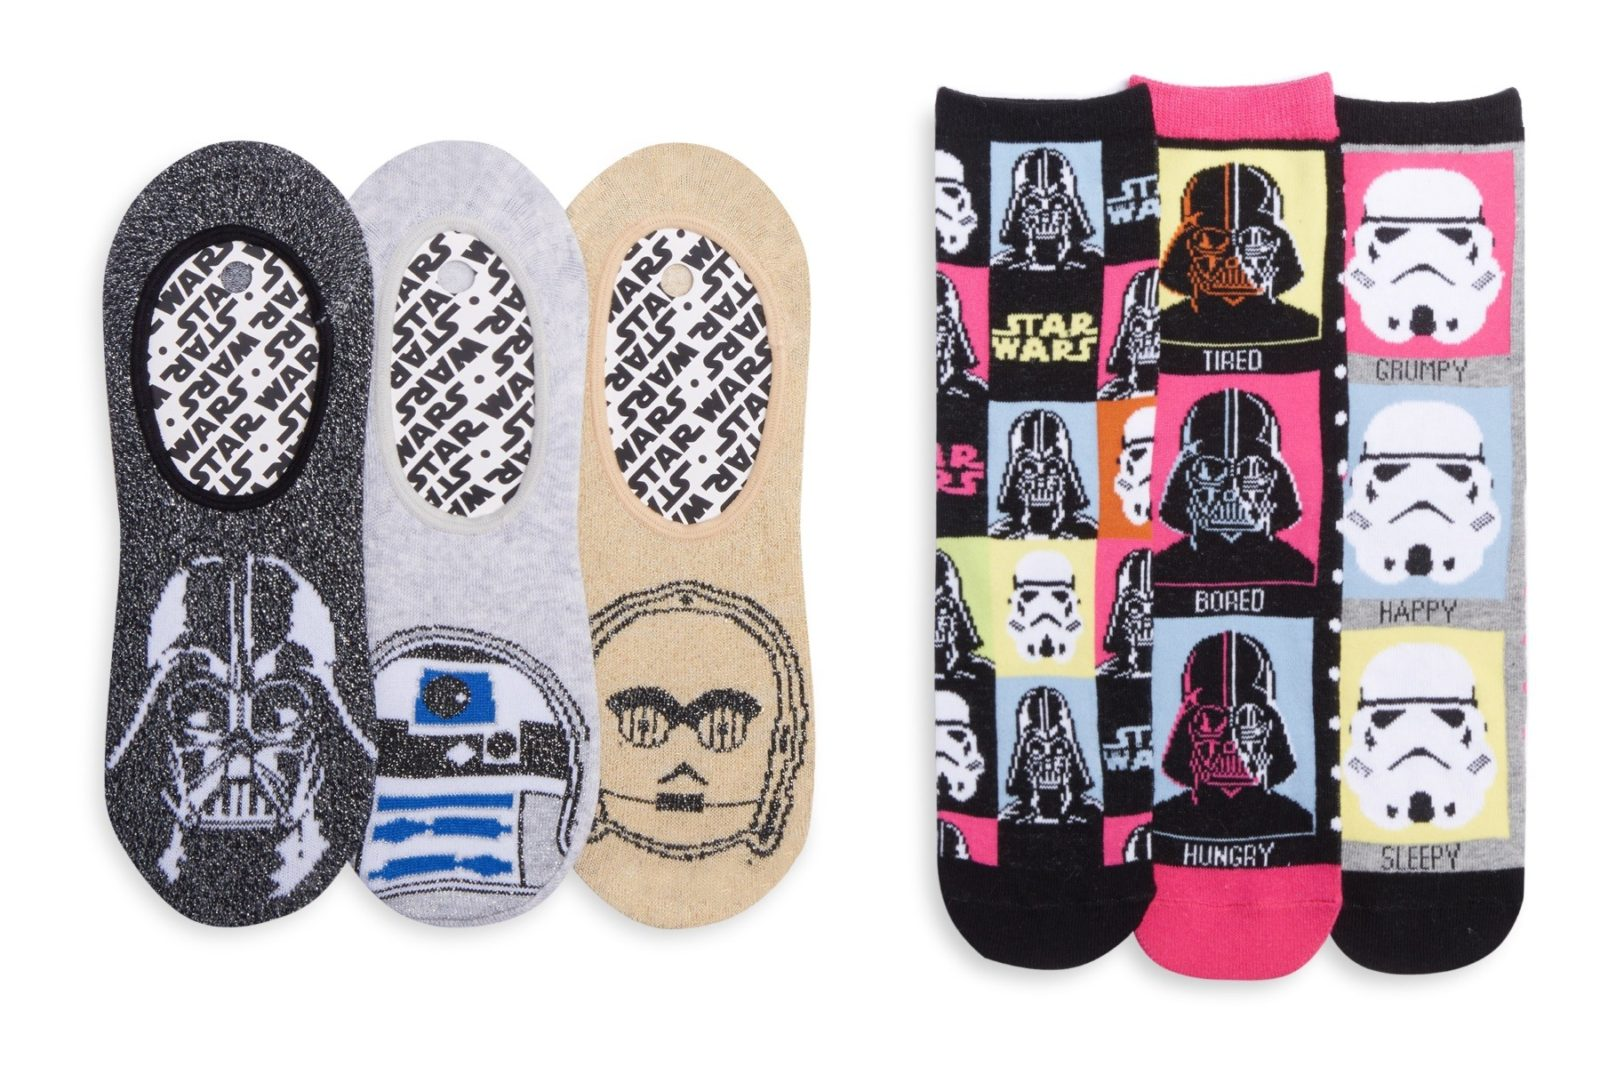 Women's Star Wars socks at Primark